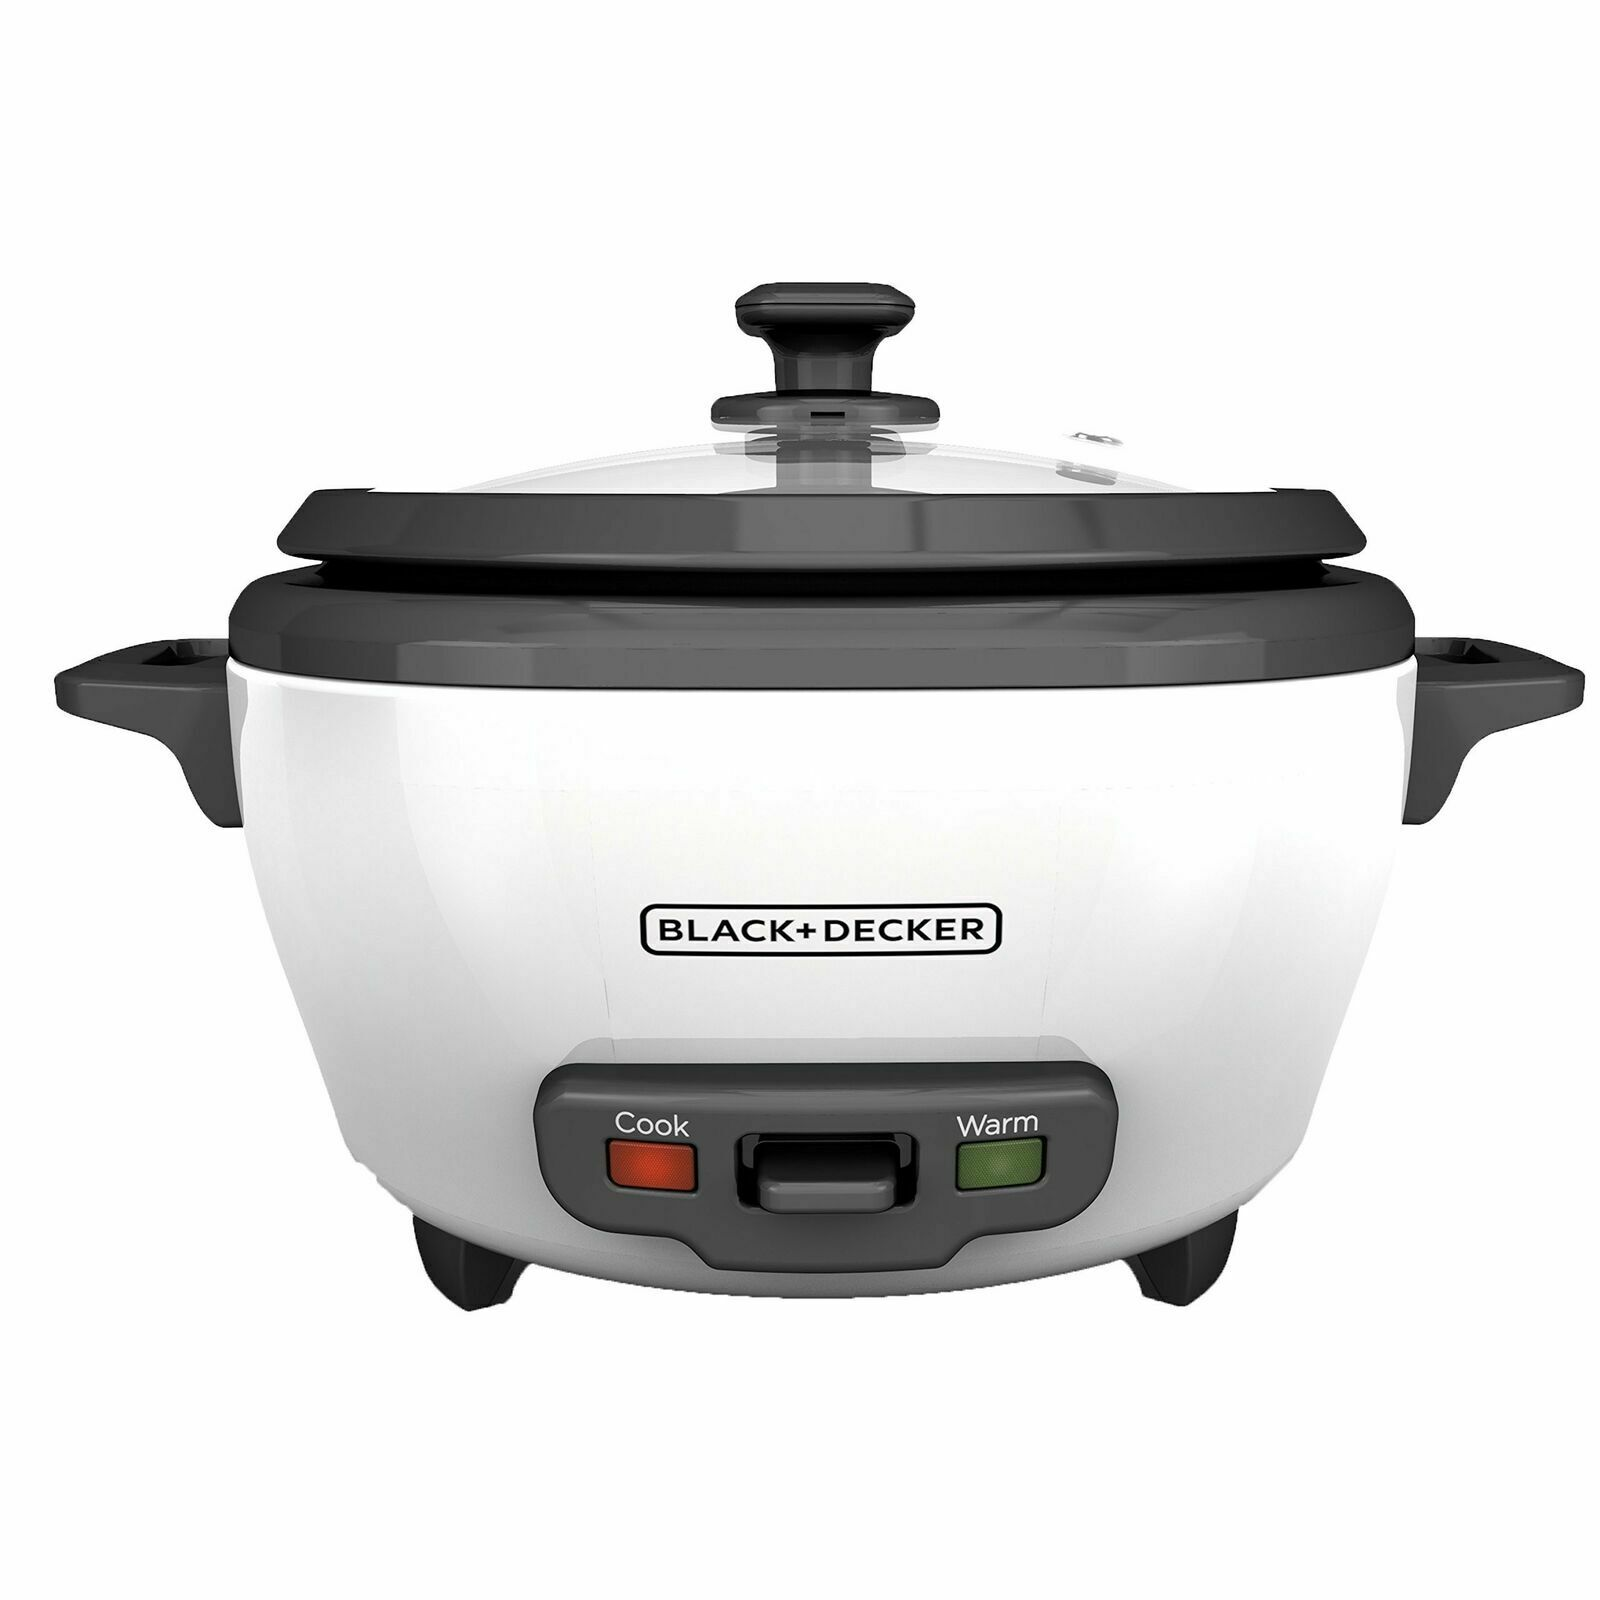 Rice Cooker Food Steamer Bowl Kitchen Appliance Meal Heating